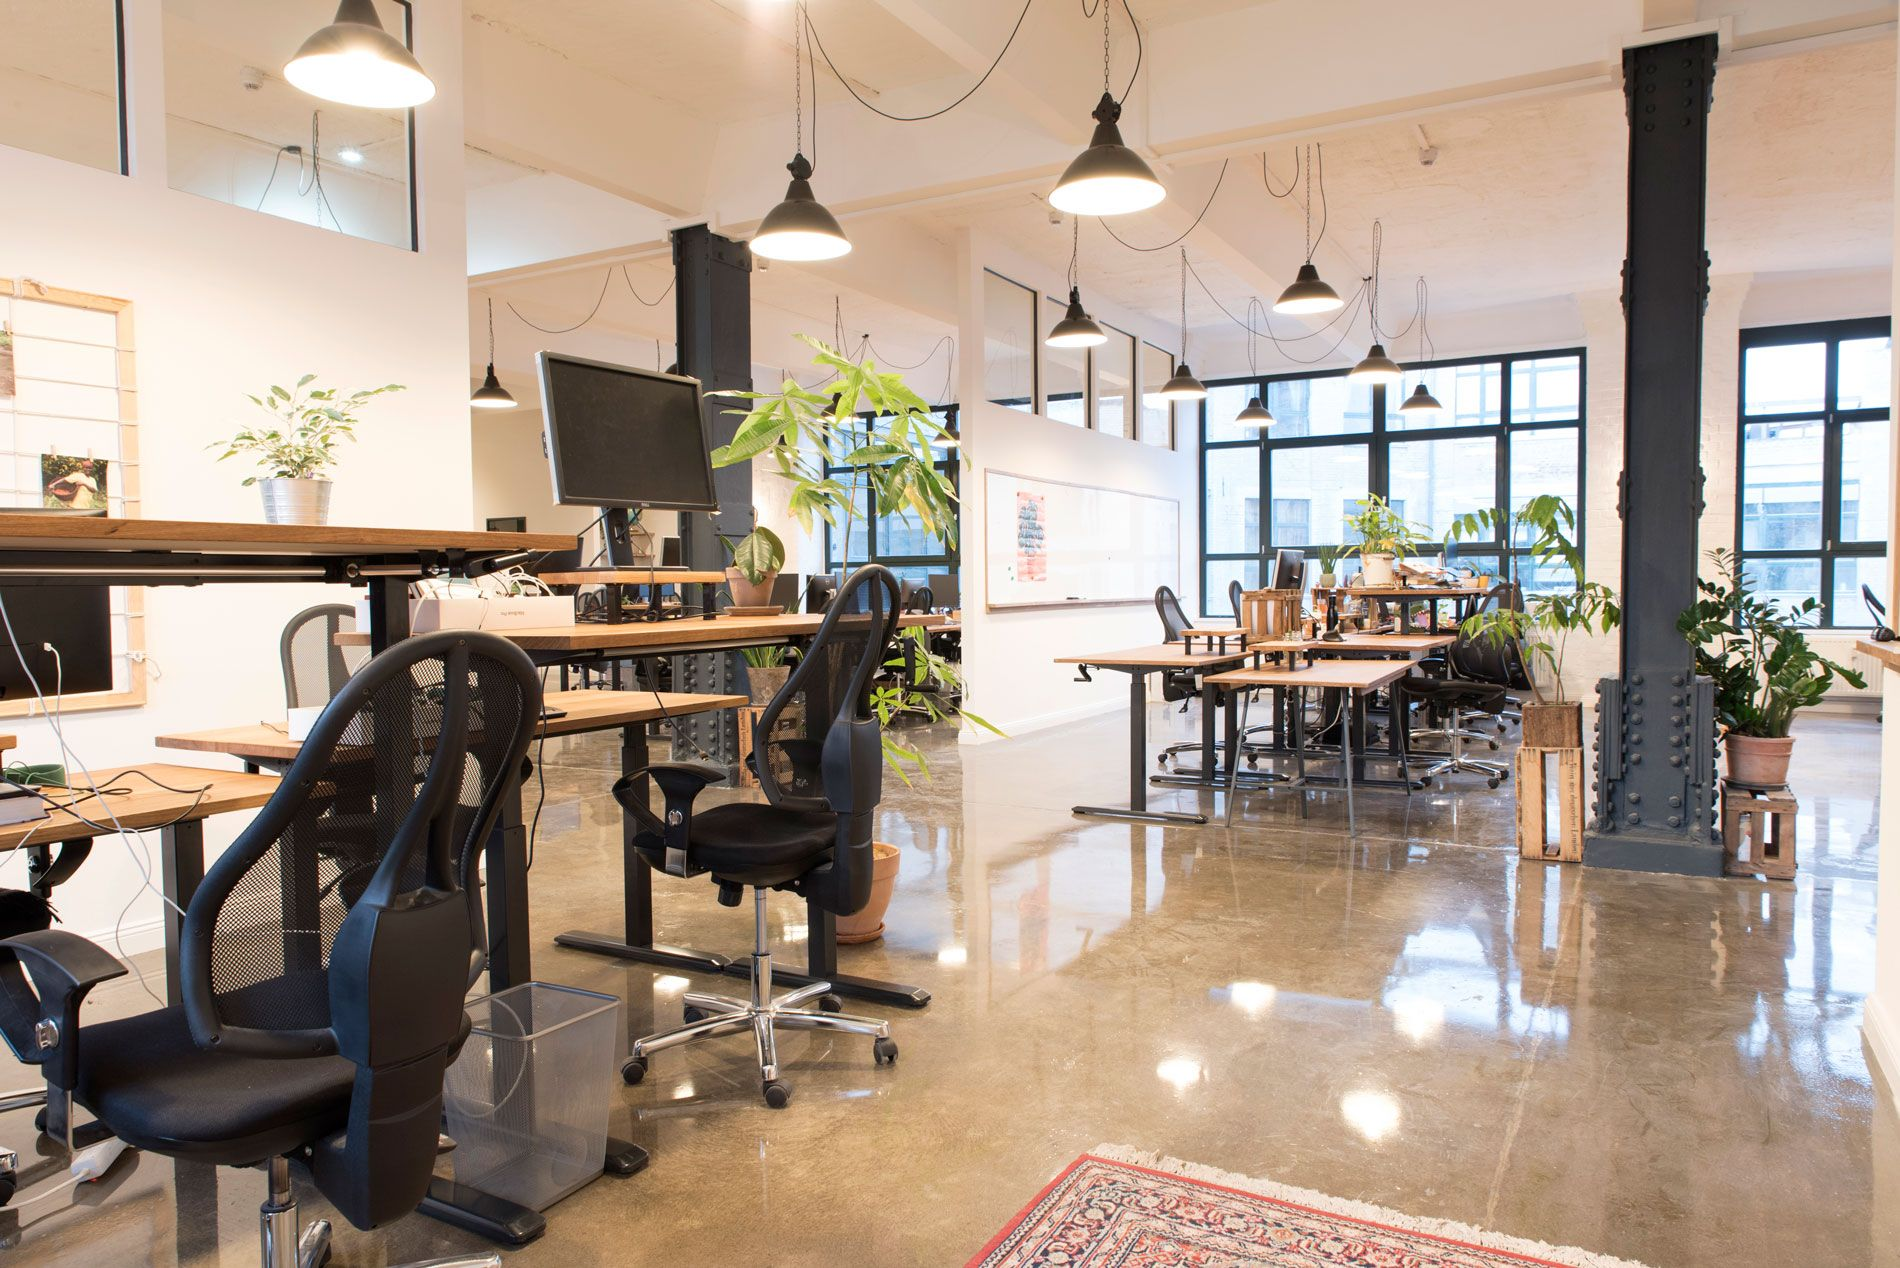 The bright spacious office is in a former factory building.